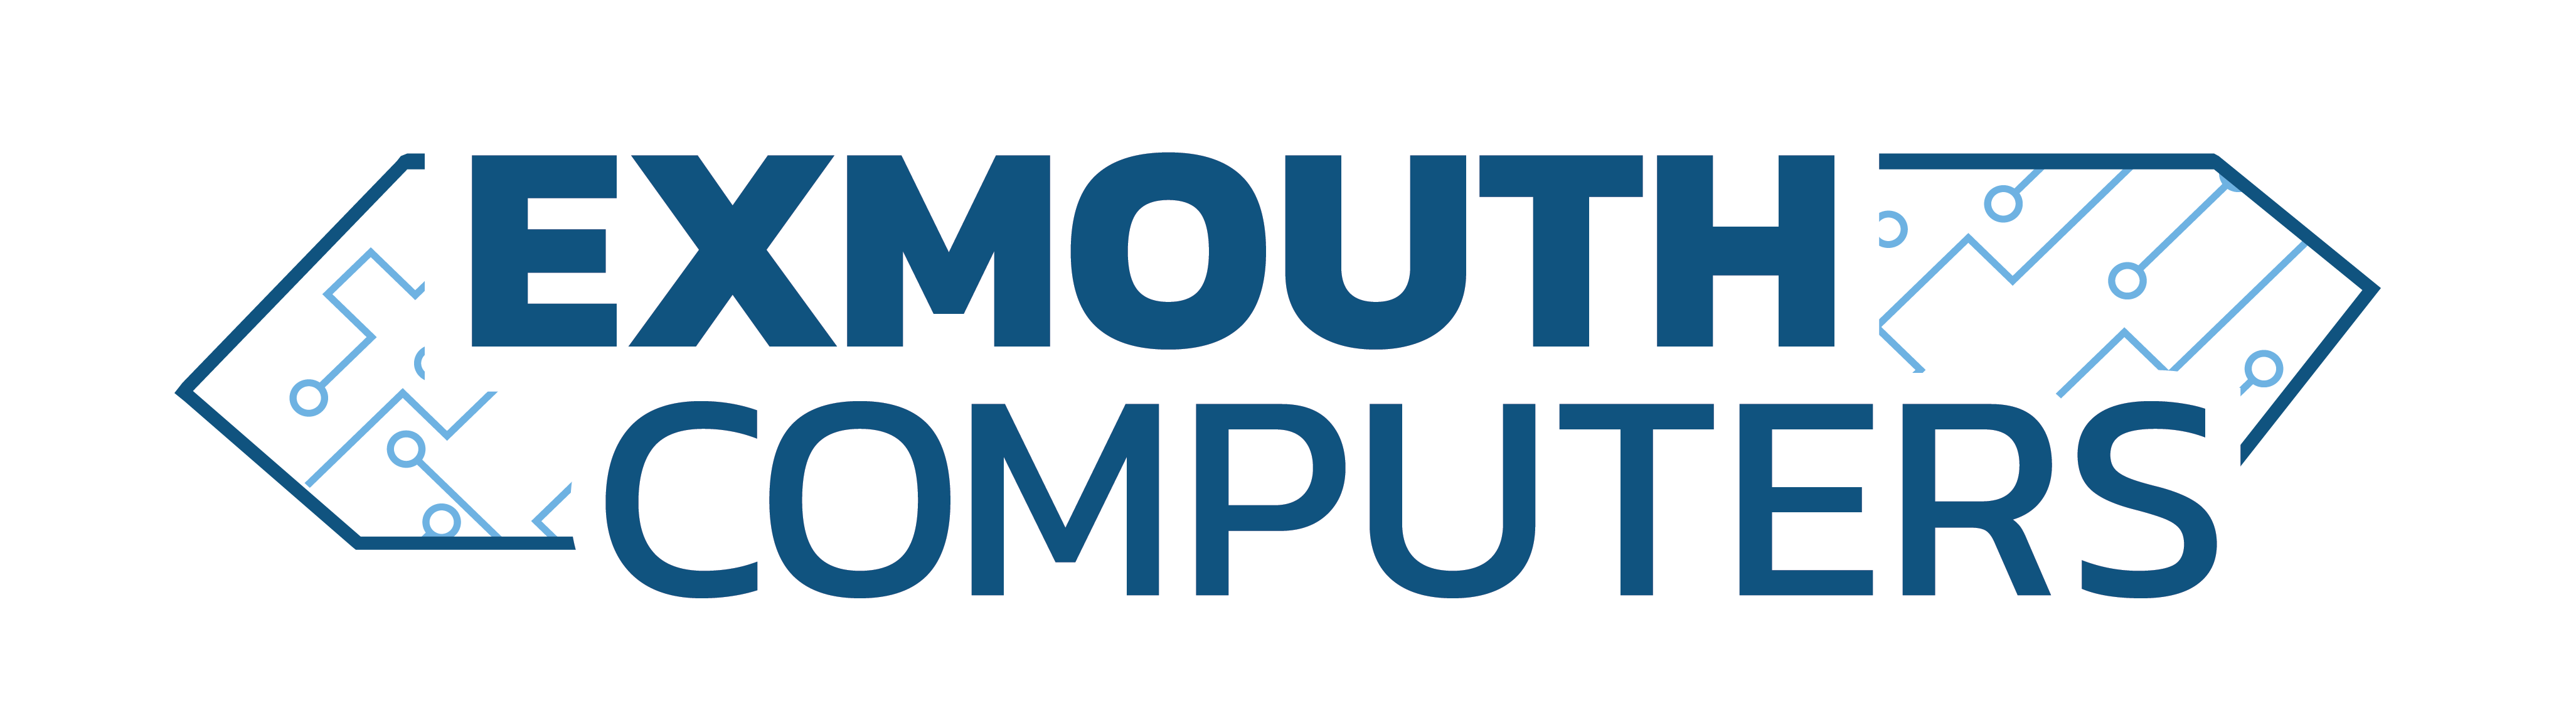 Exmouth Computers